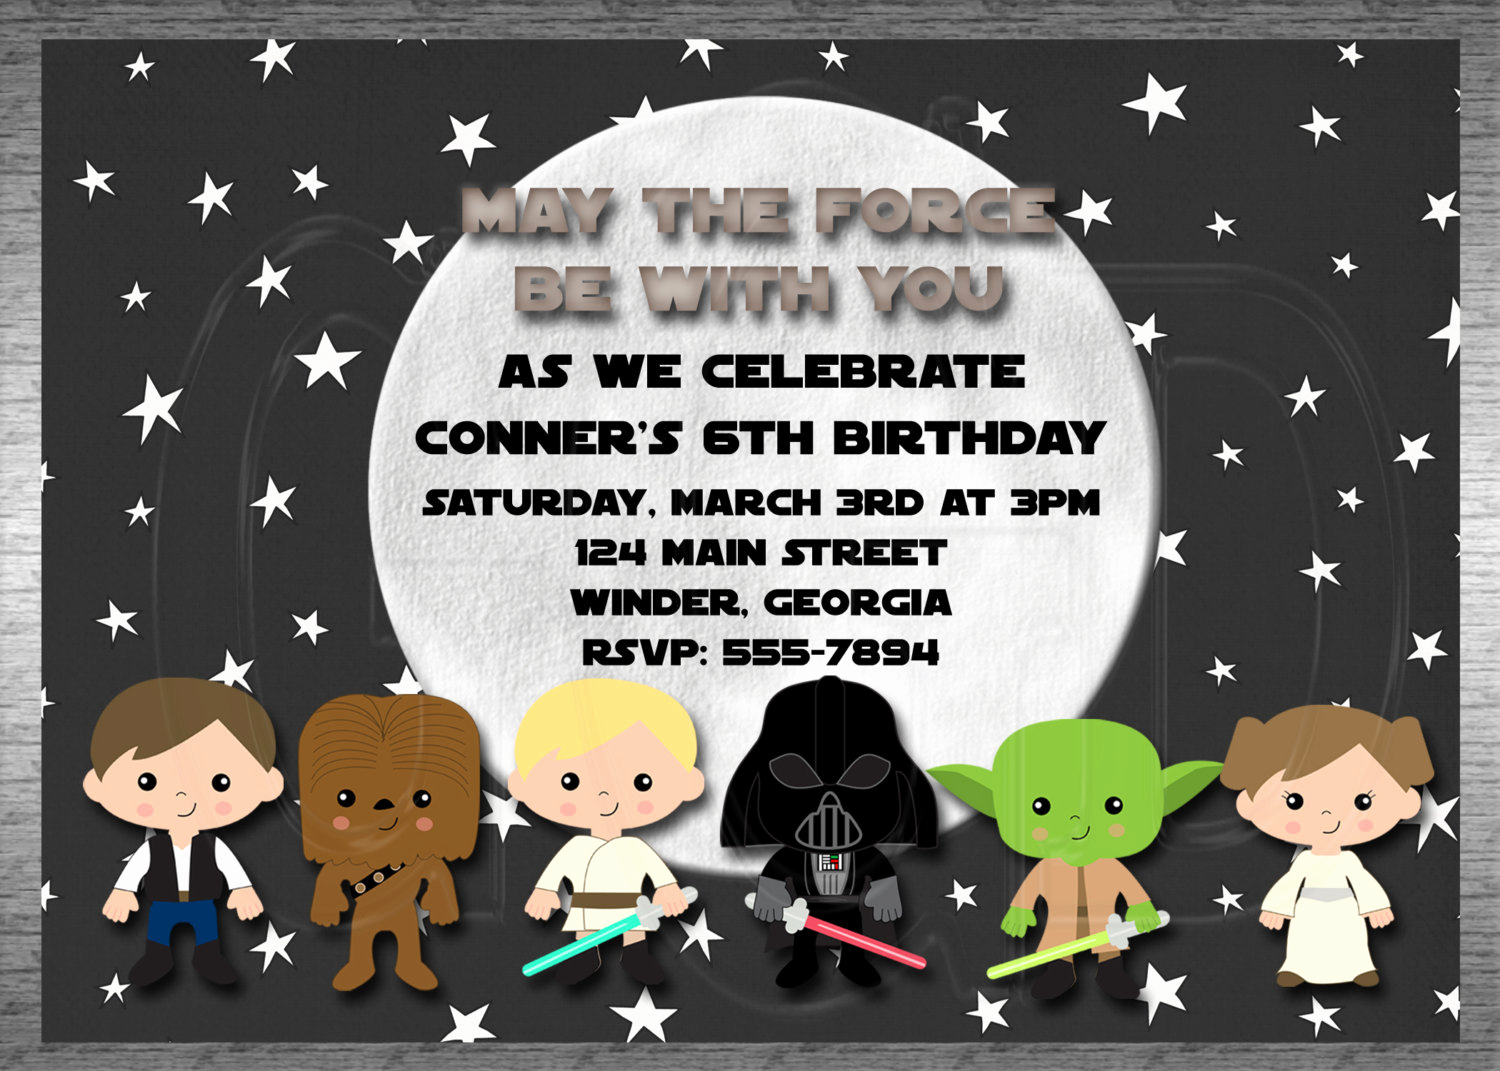 Star Wars Invitation Printable Free Luxury Galaxy Star Wars Invitation Inspired Boy or by